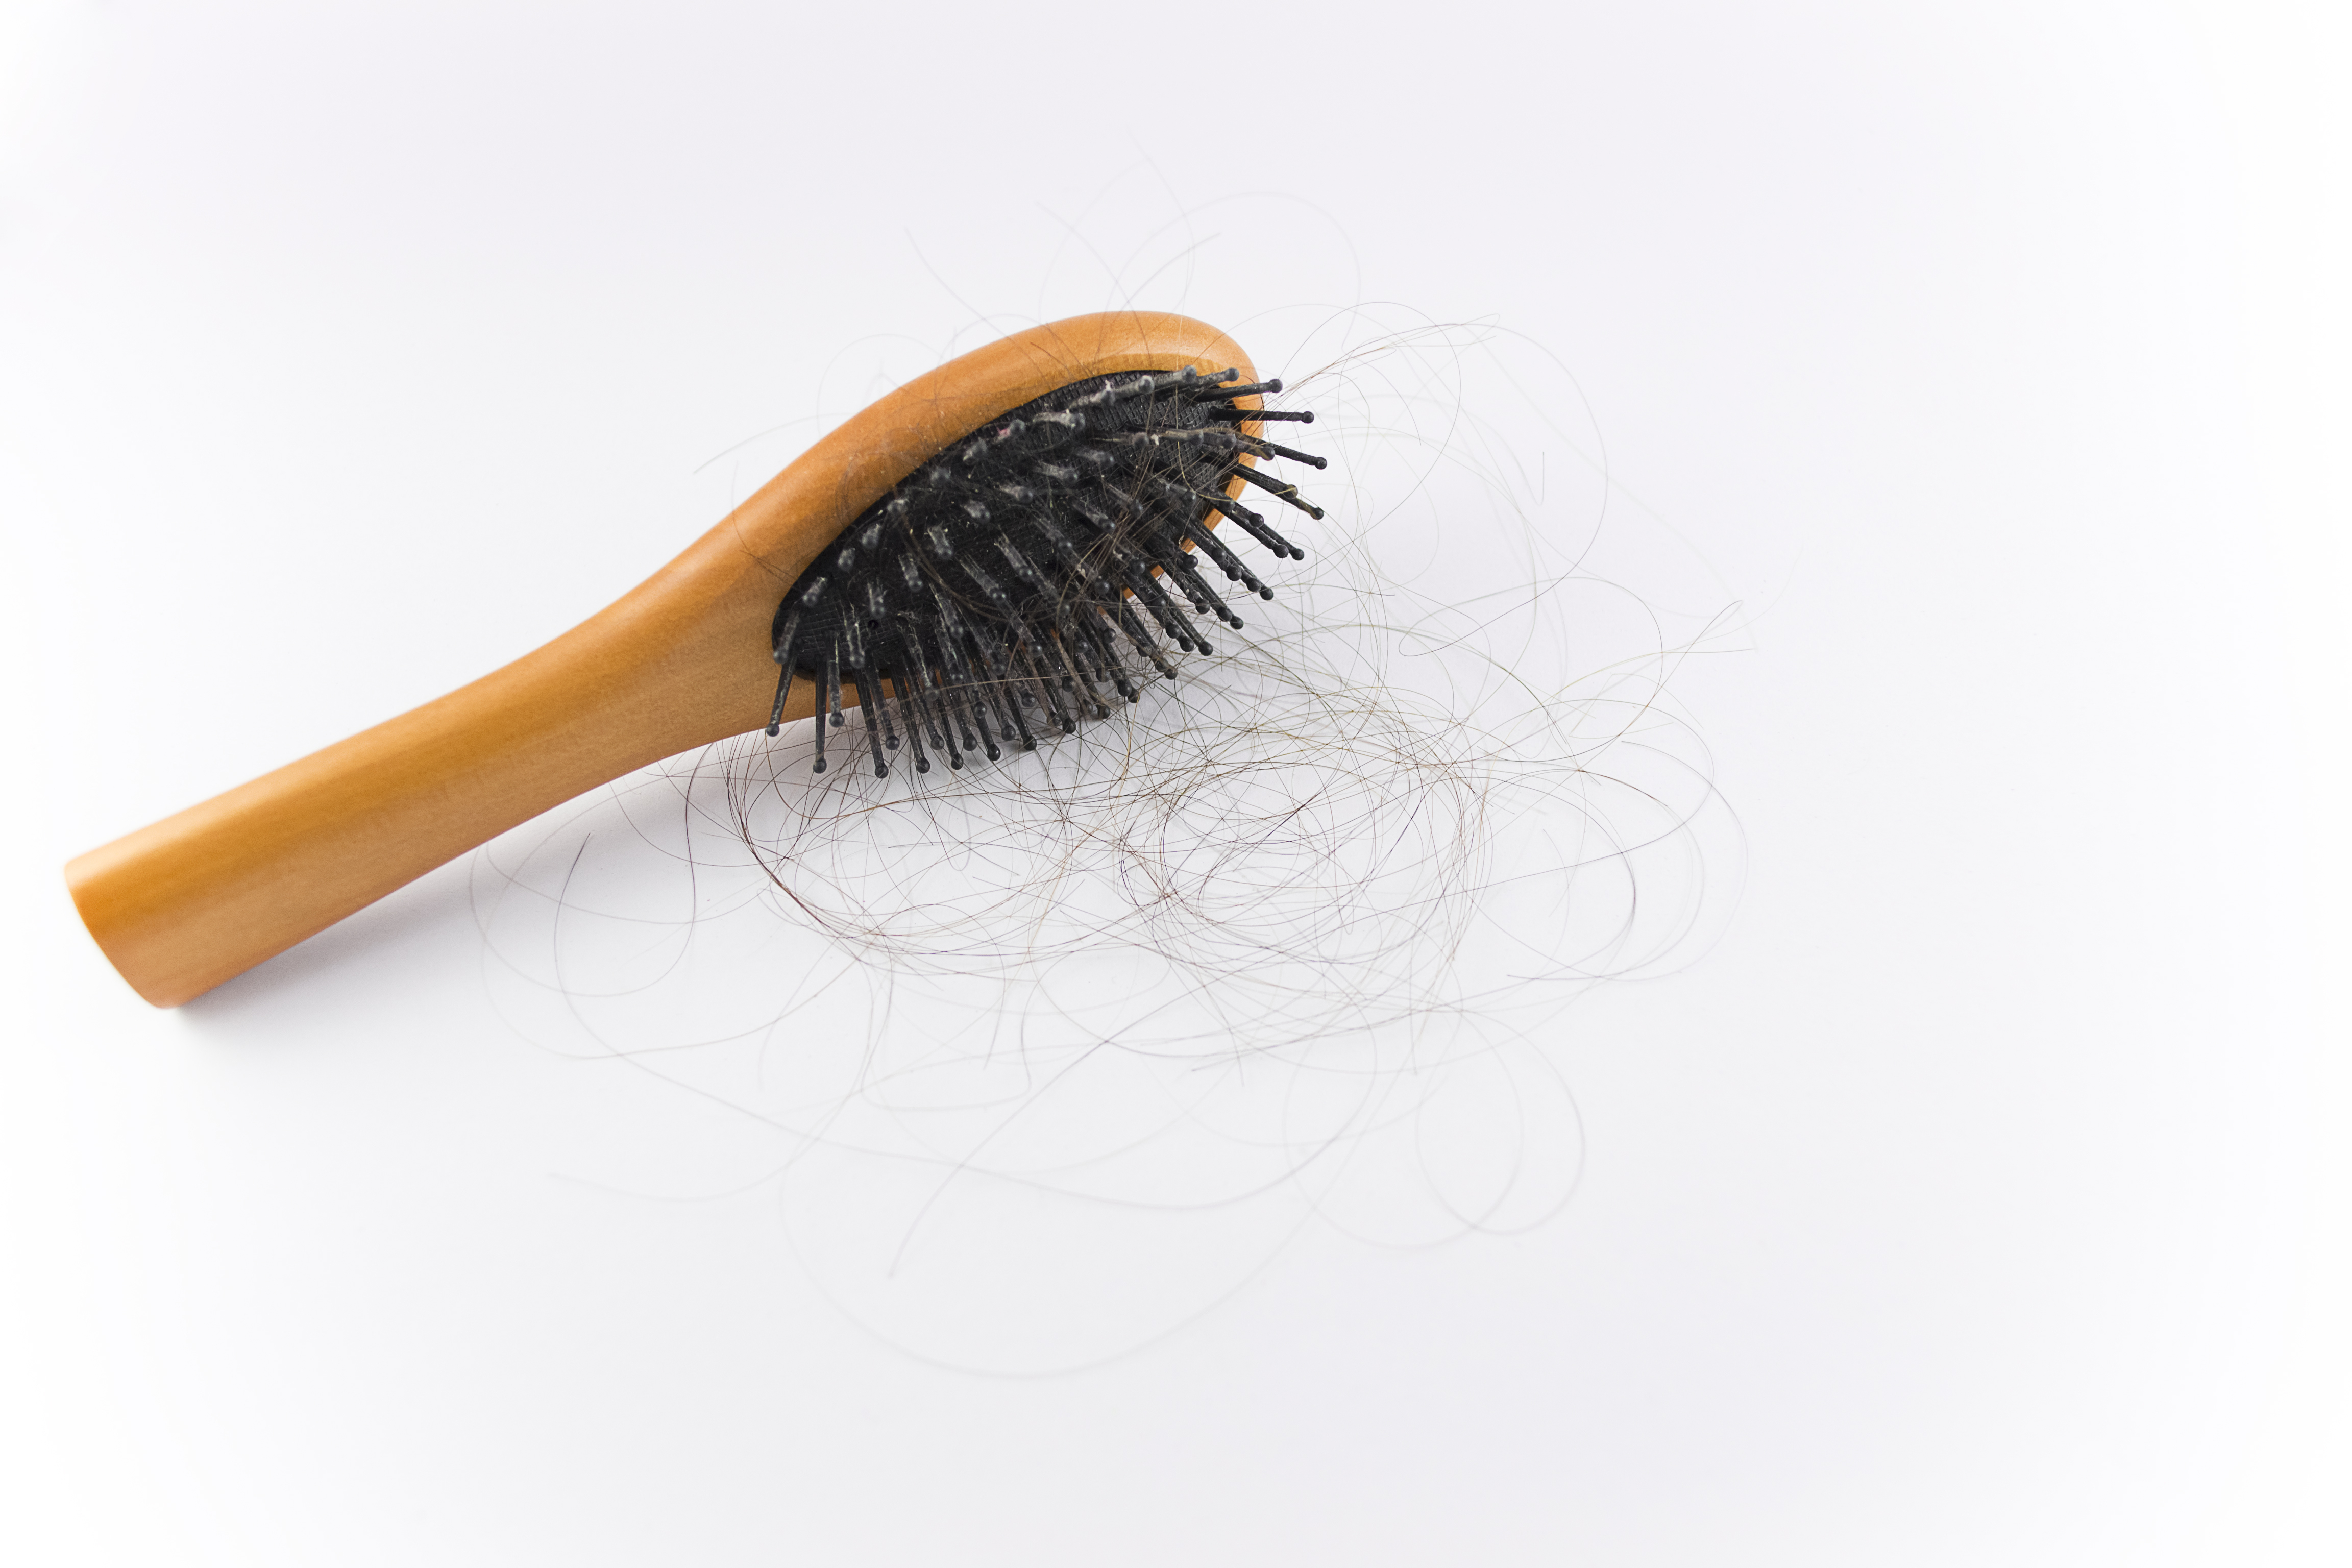 How to Remove a Hair Brush That's Tangled in Hair | LEAFtv